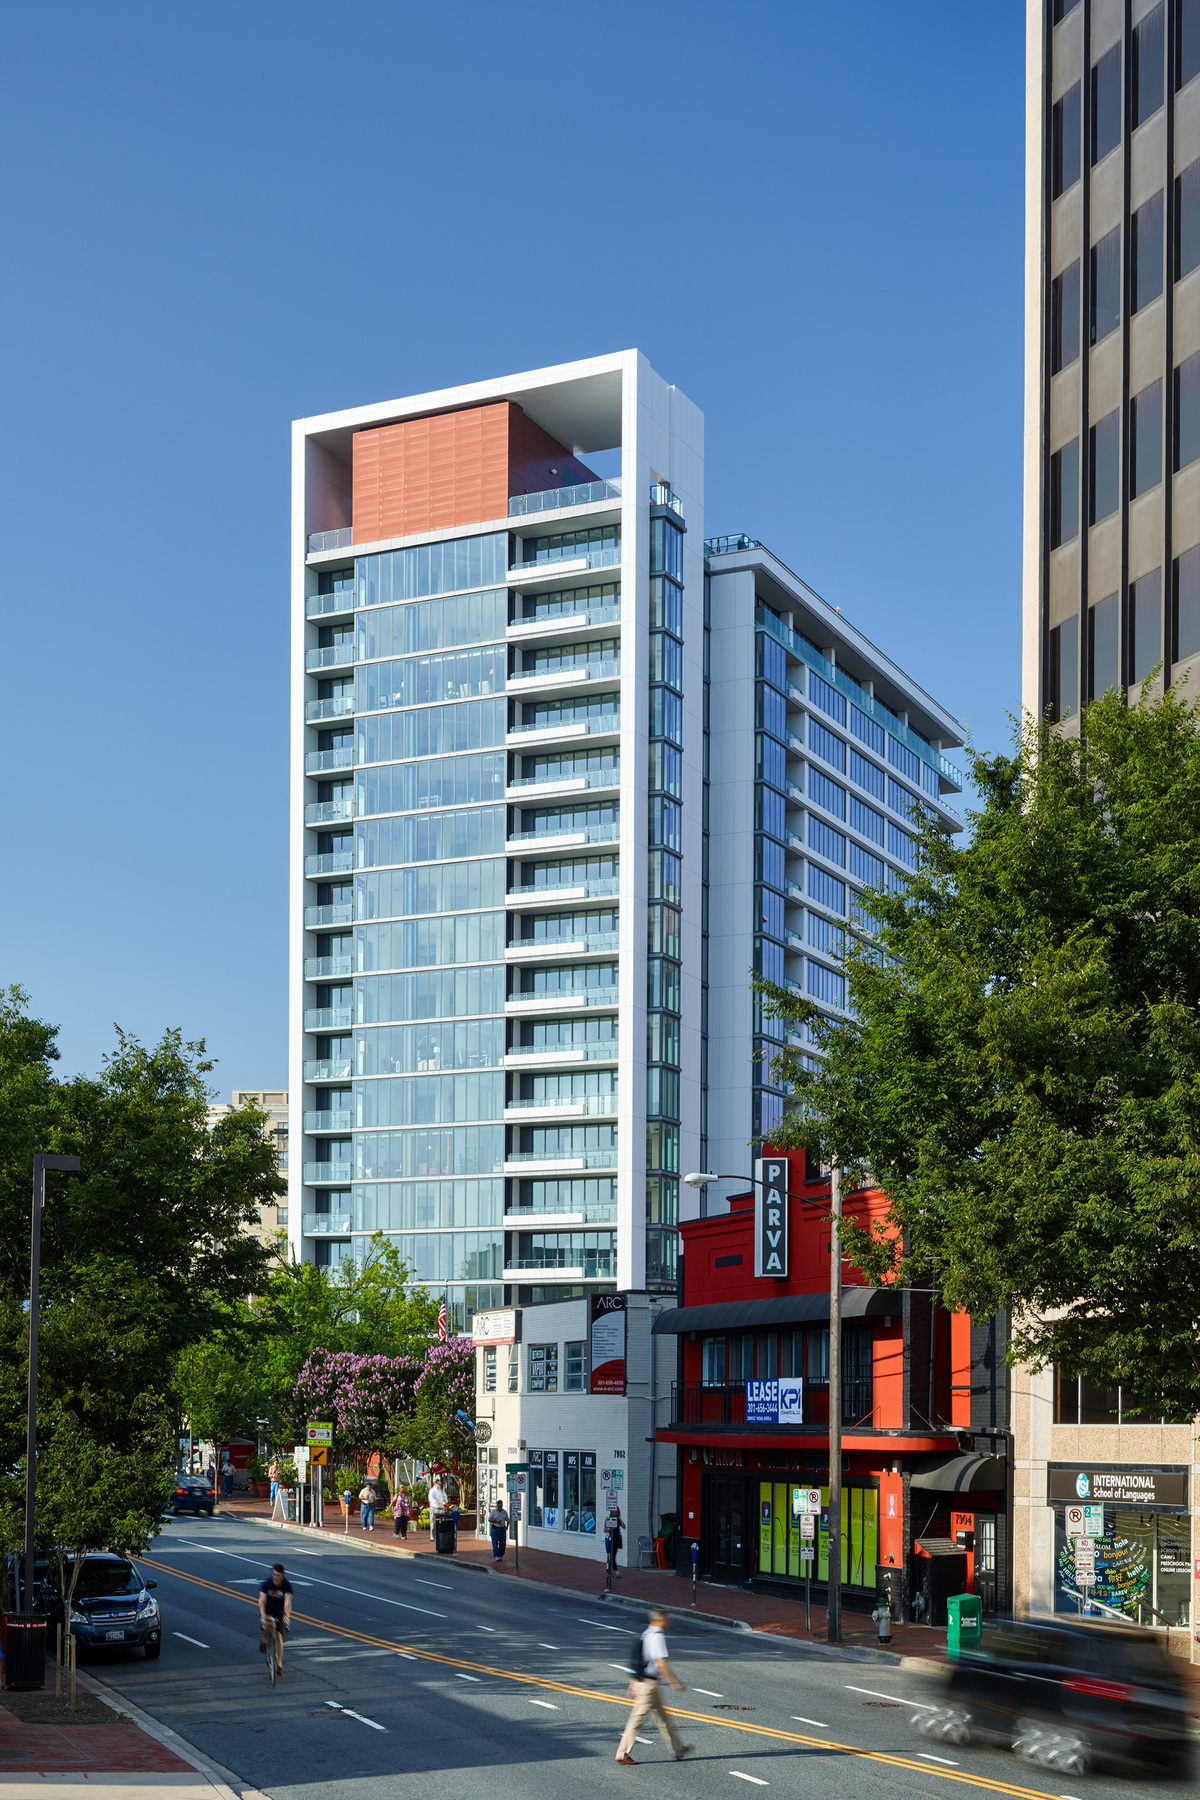 Additional photo for property listing at 7770 Norfolk Avenue 303, Bethesda 7770 Norfolk Ave 303 贝塞斯达, 马里兰州 20814 美国